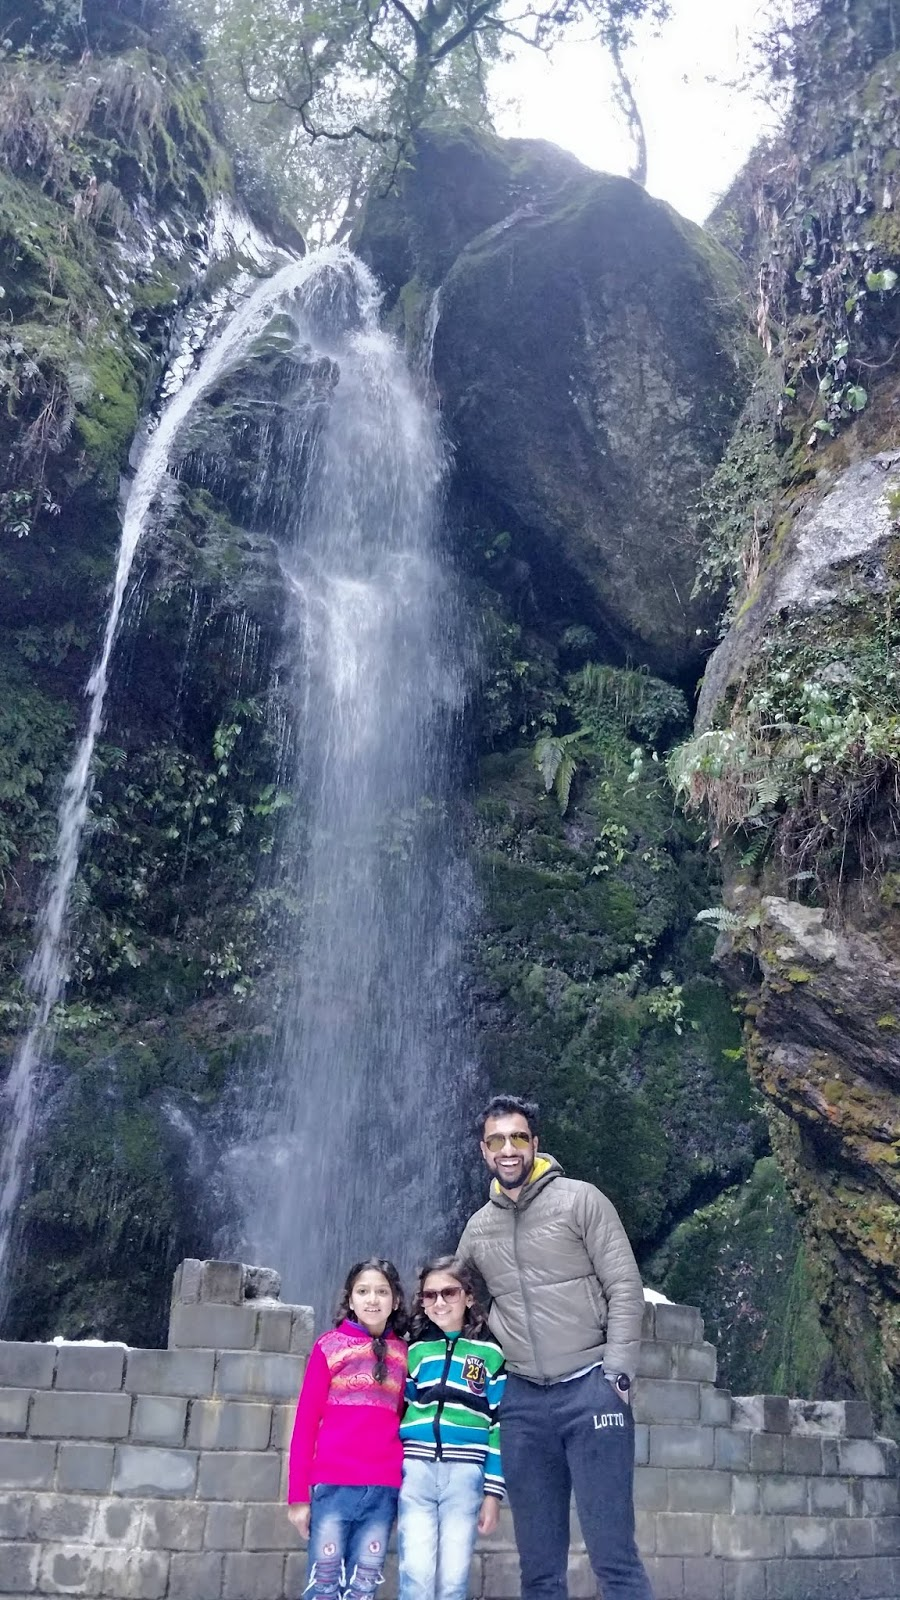 Jibhi Waterfall, Himachal Pardesh.